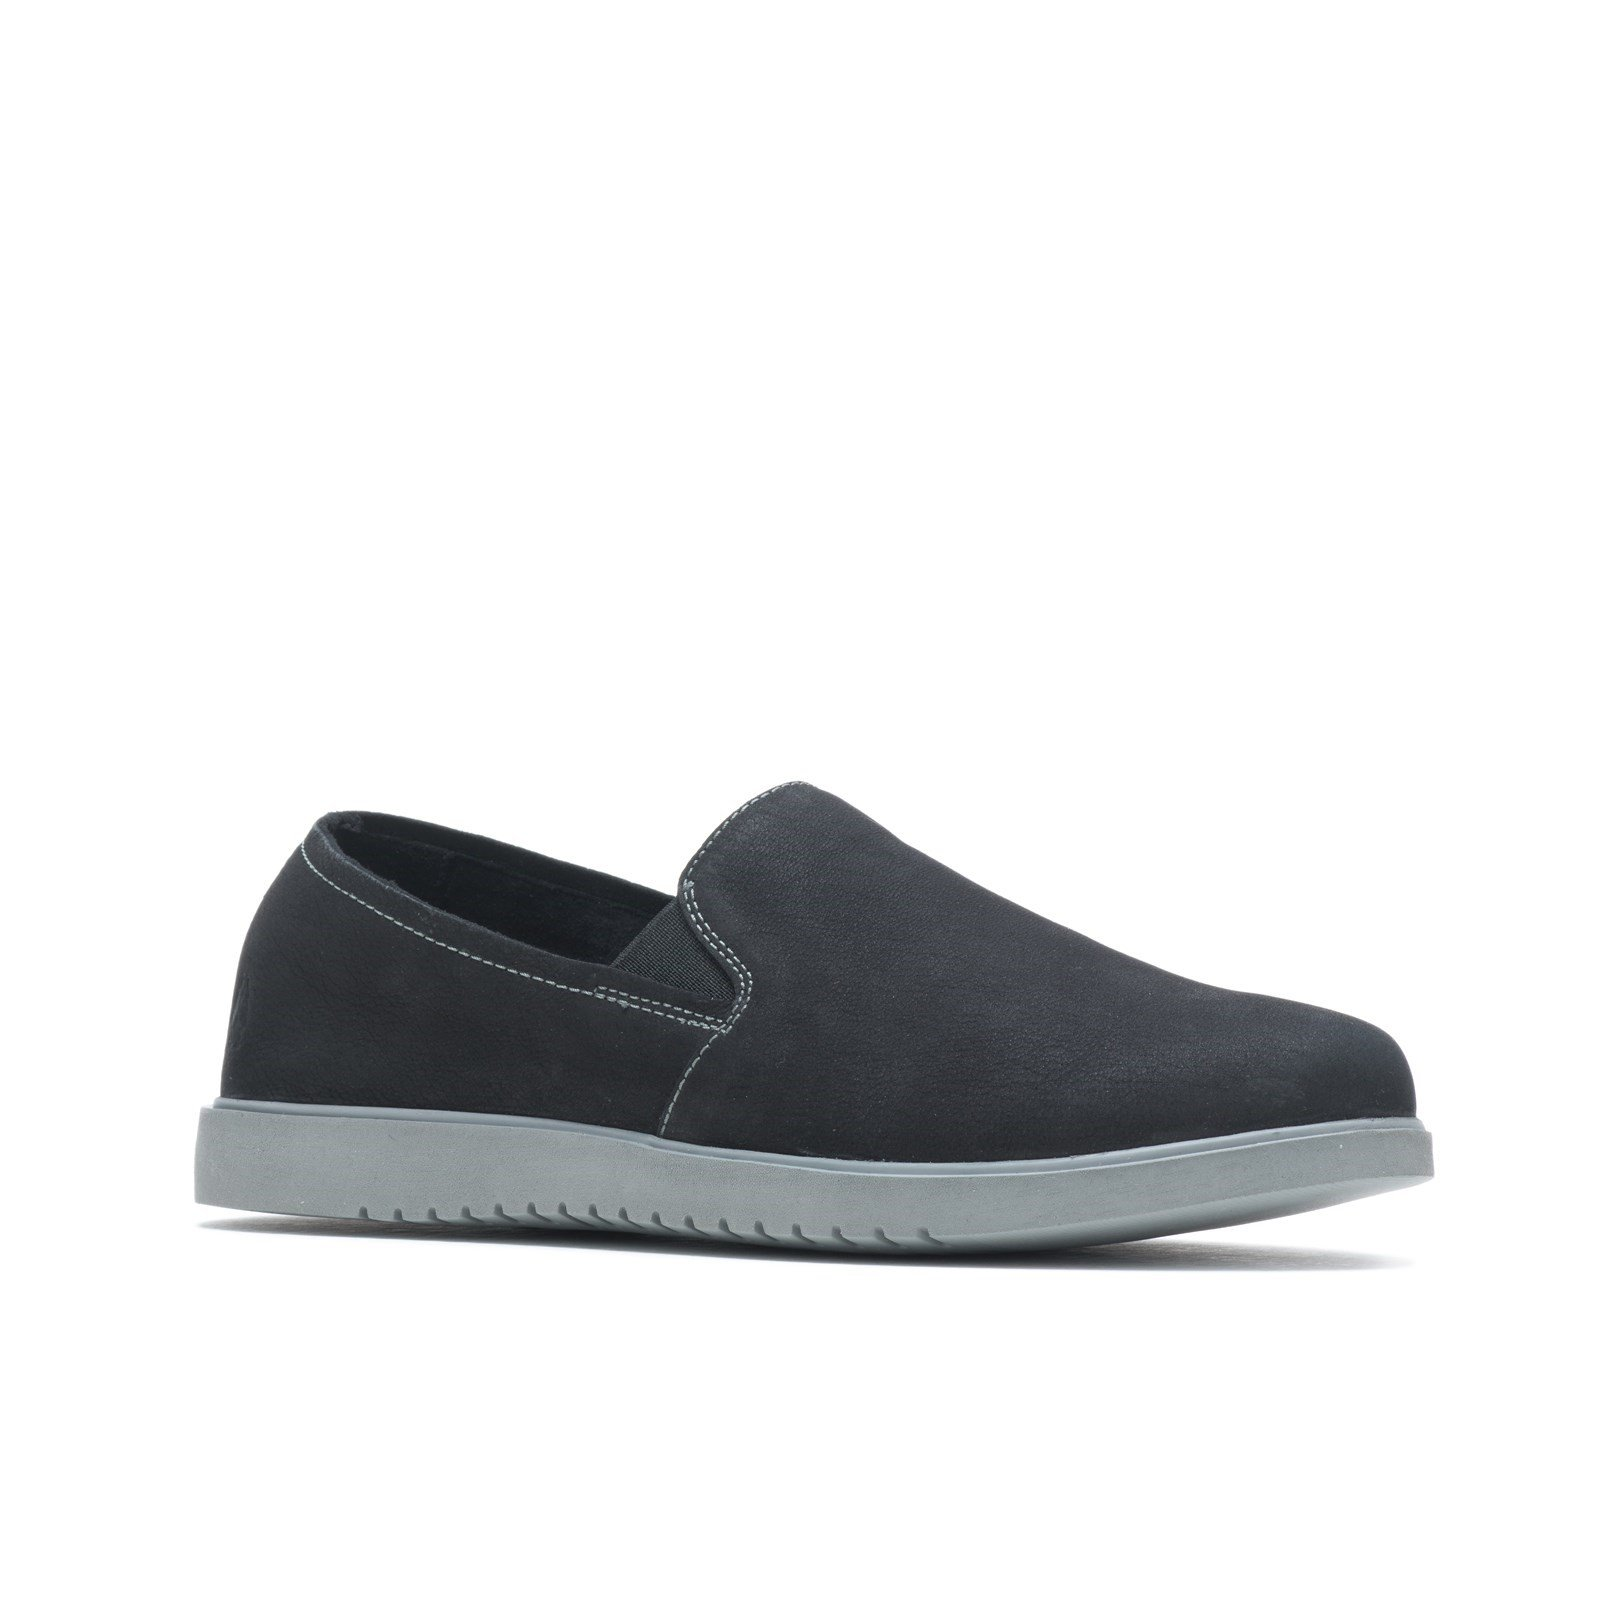 Hush Puppies Women's Everyday Trainer Various Colours 31944 - Black 9